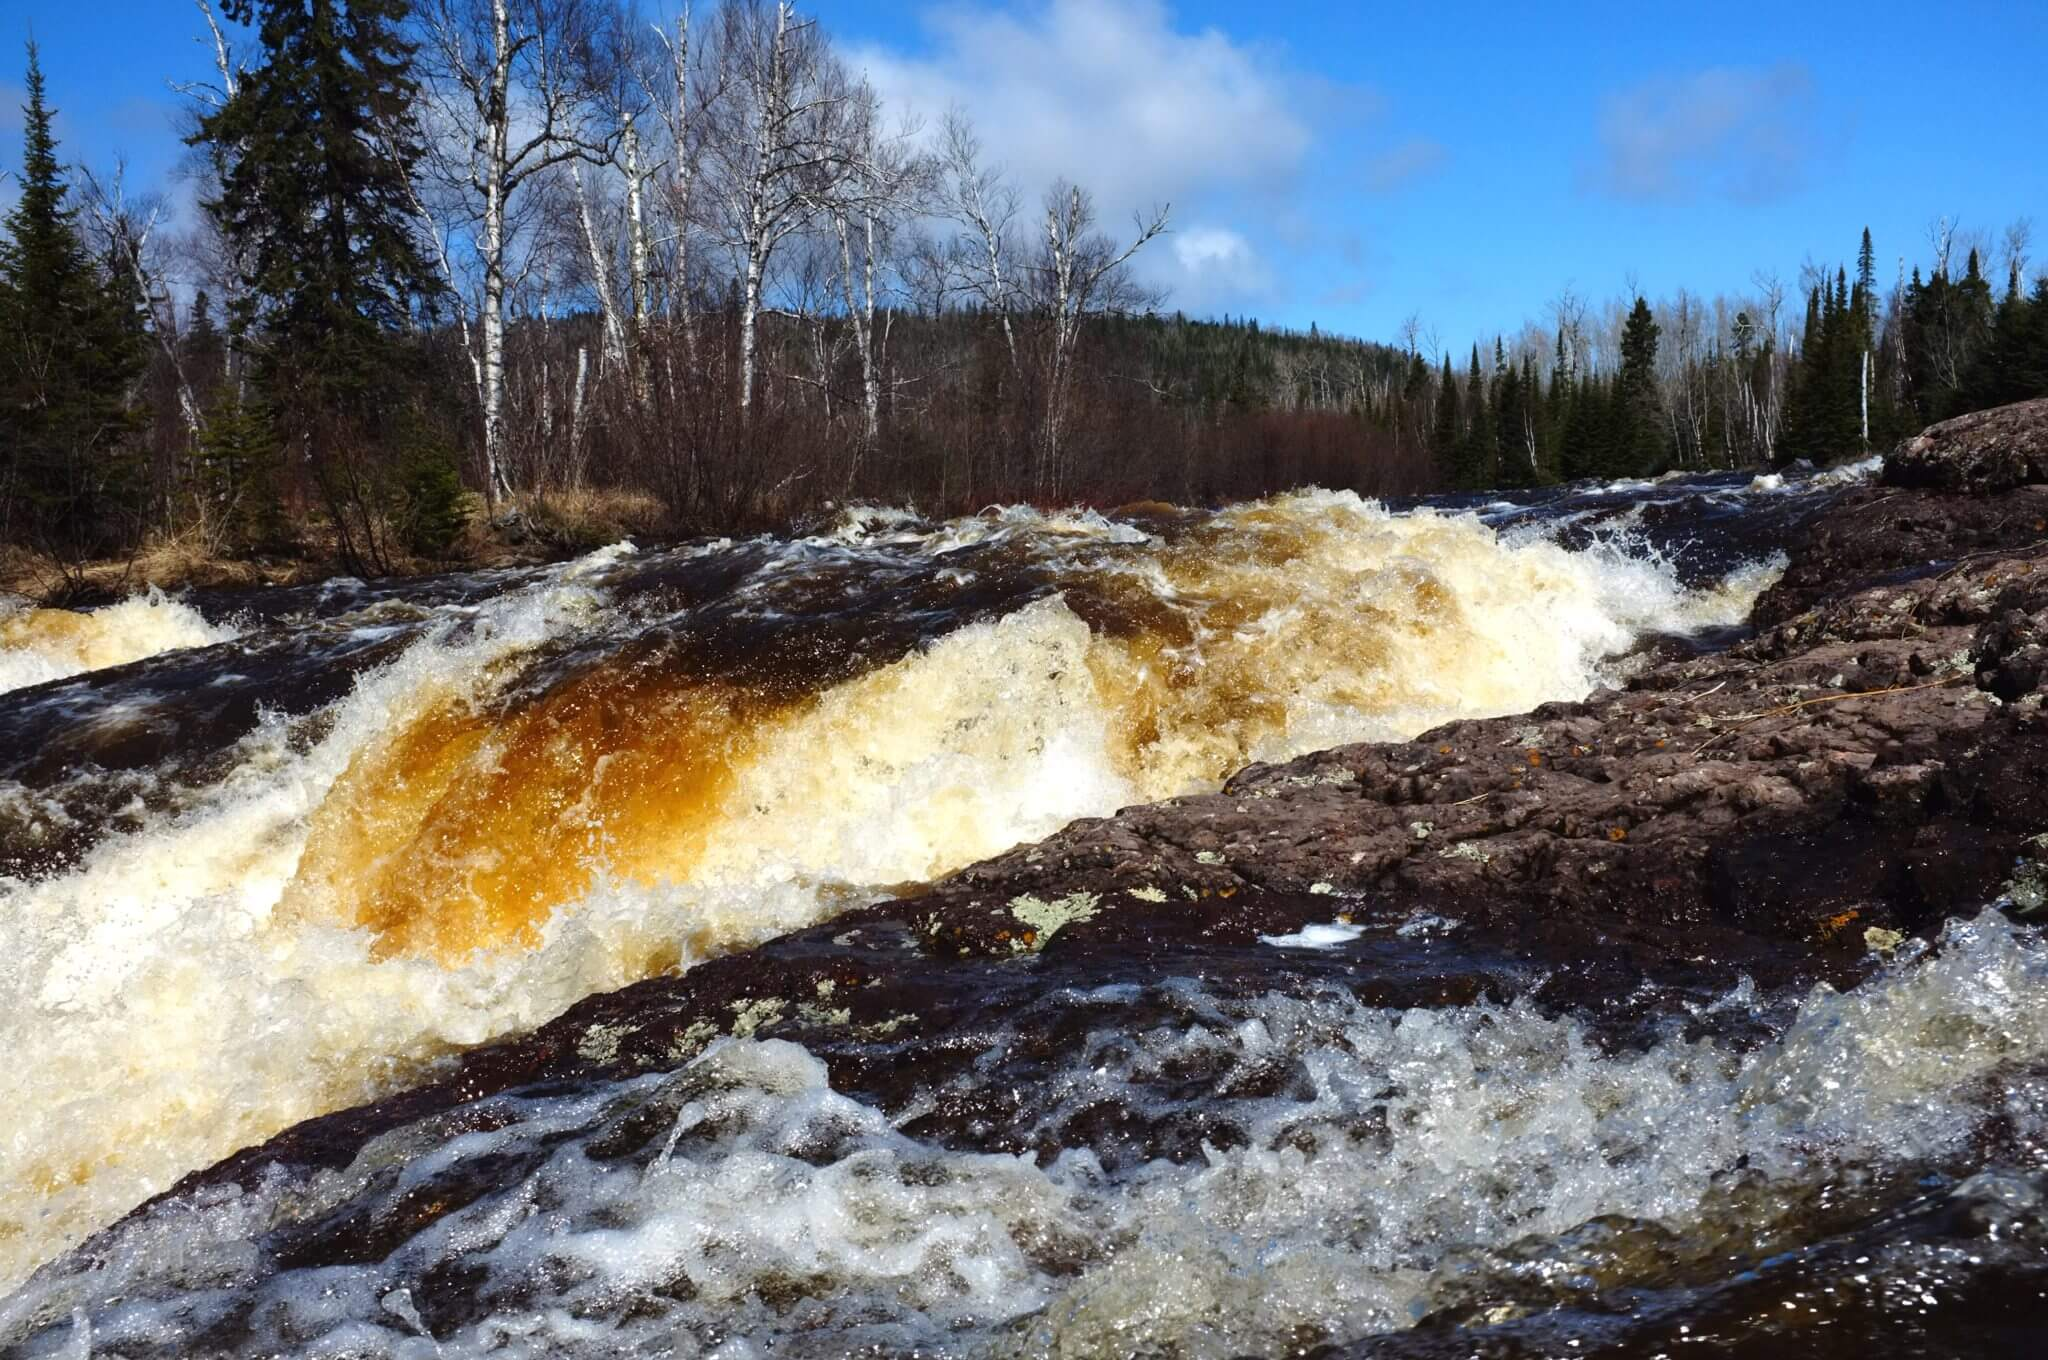 Temperance River rapids